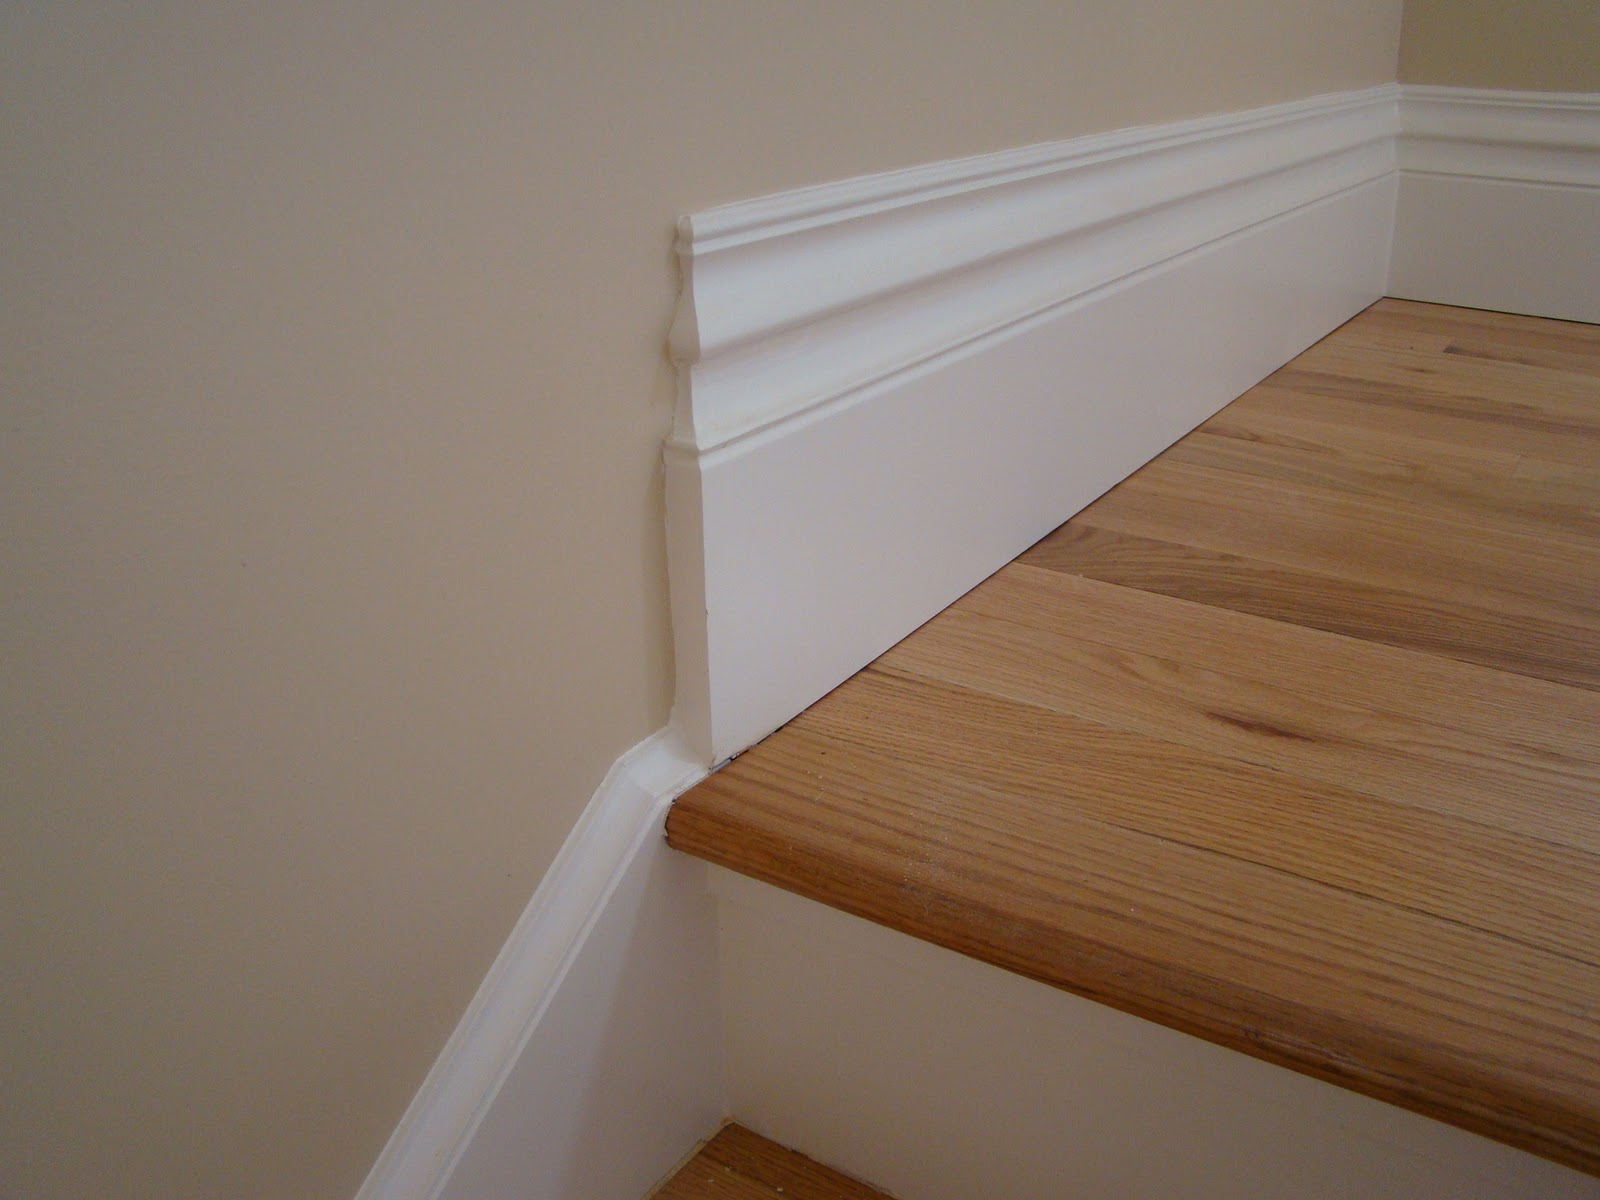 In The Main Level, We Were Trying To Match The Existing Trim In The Old  Part Of The House. We Were Unable To Find The Same 100 Year Old Tall Curvy  Profile, ...